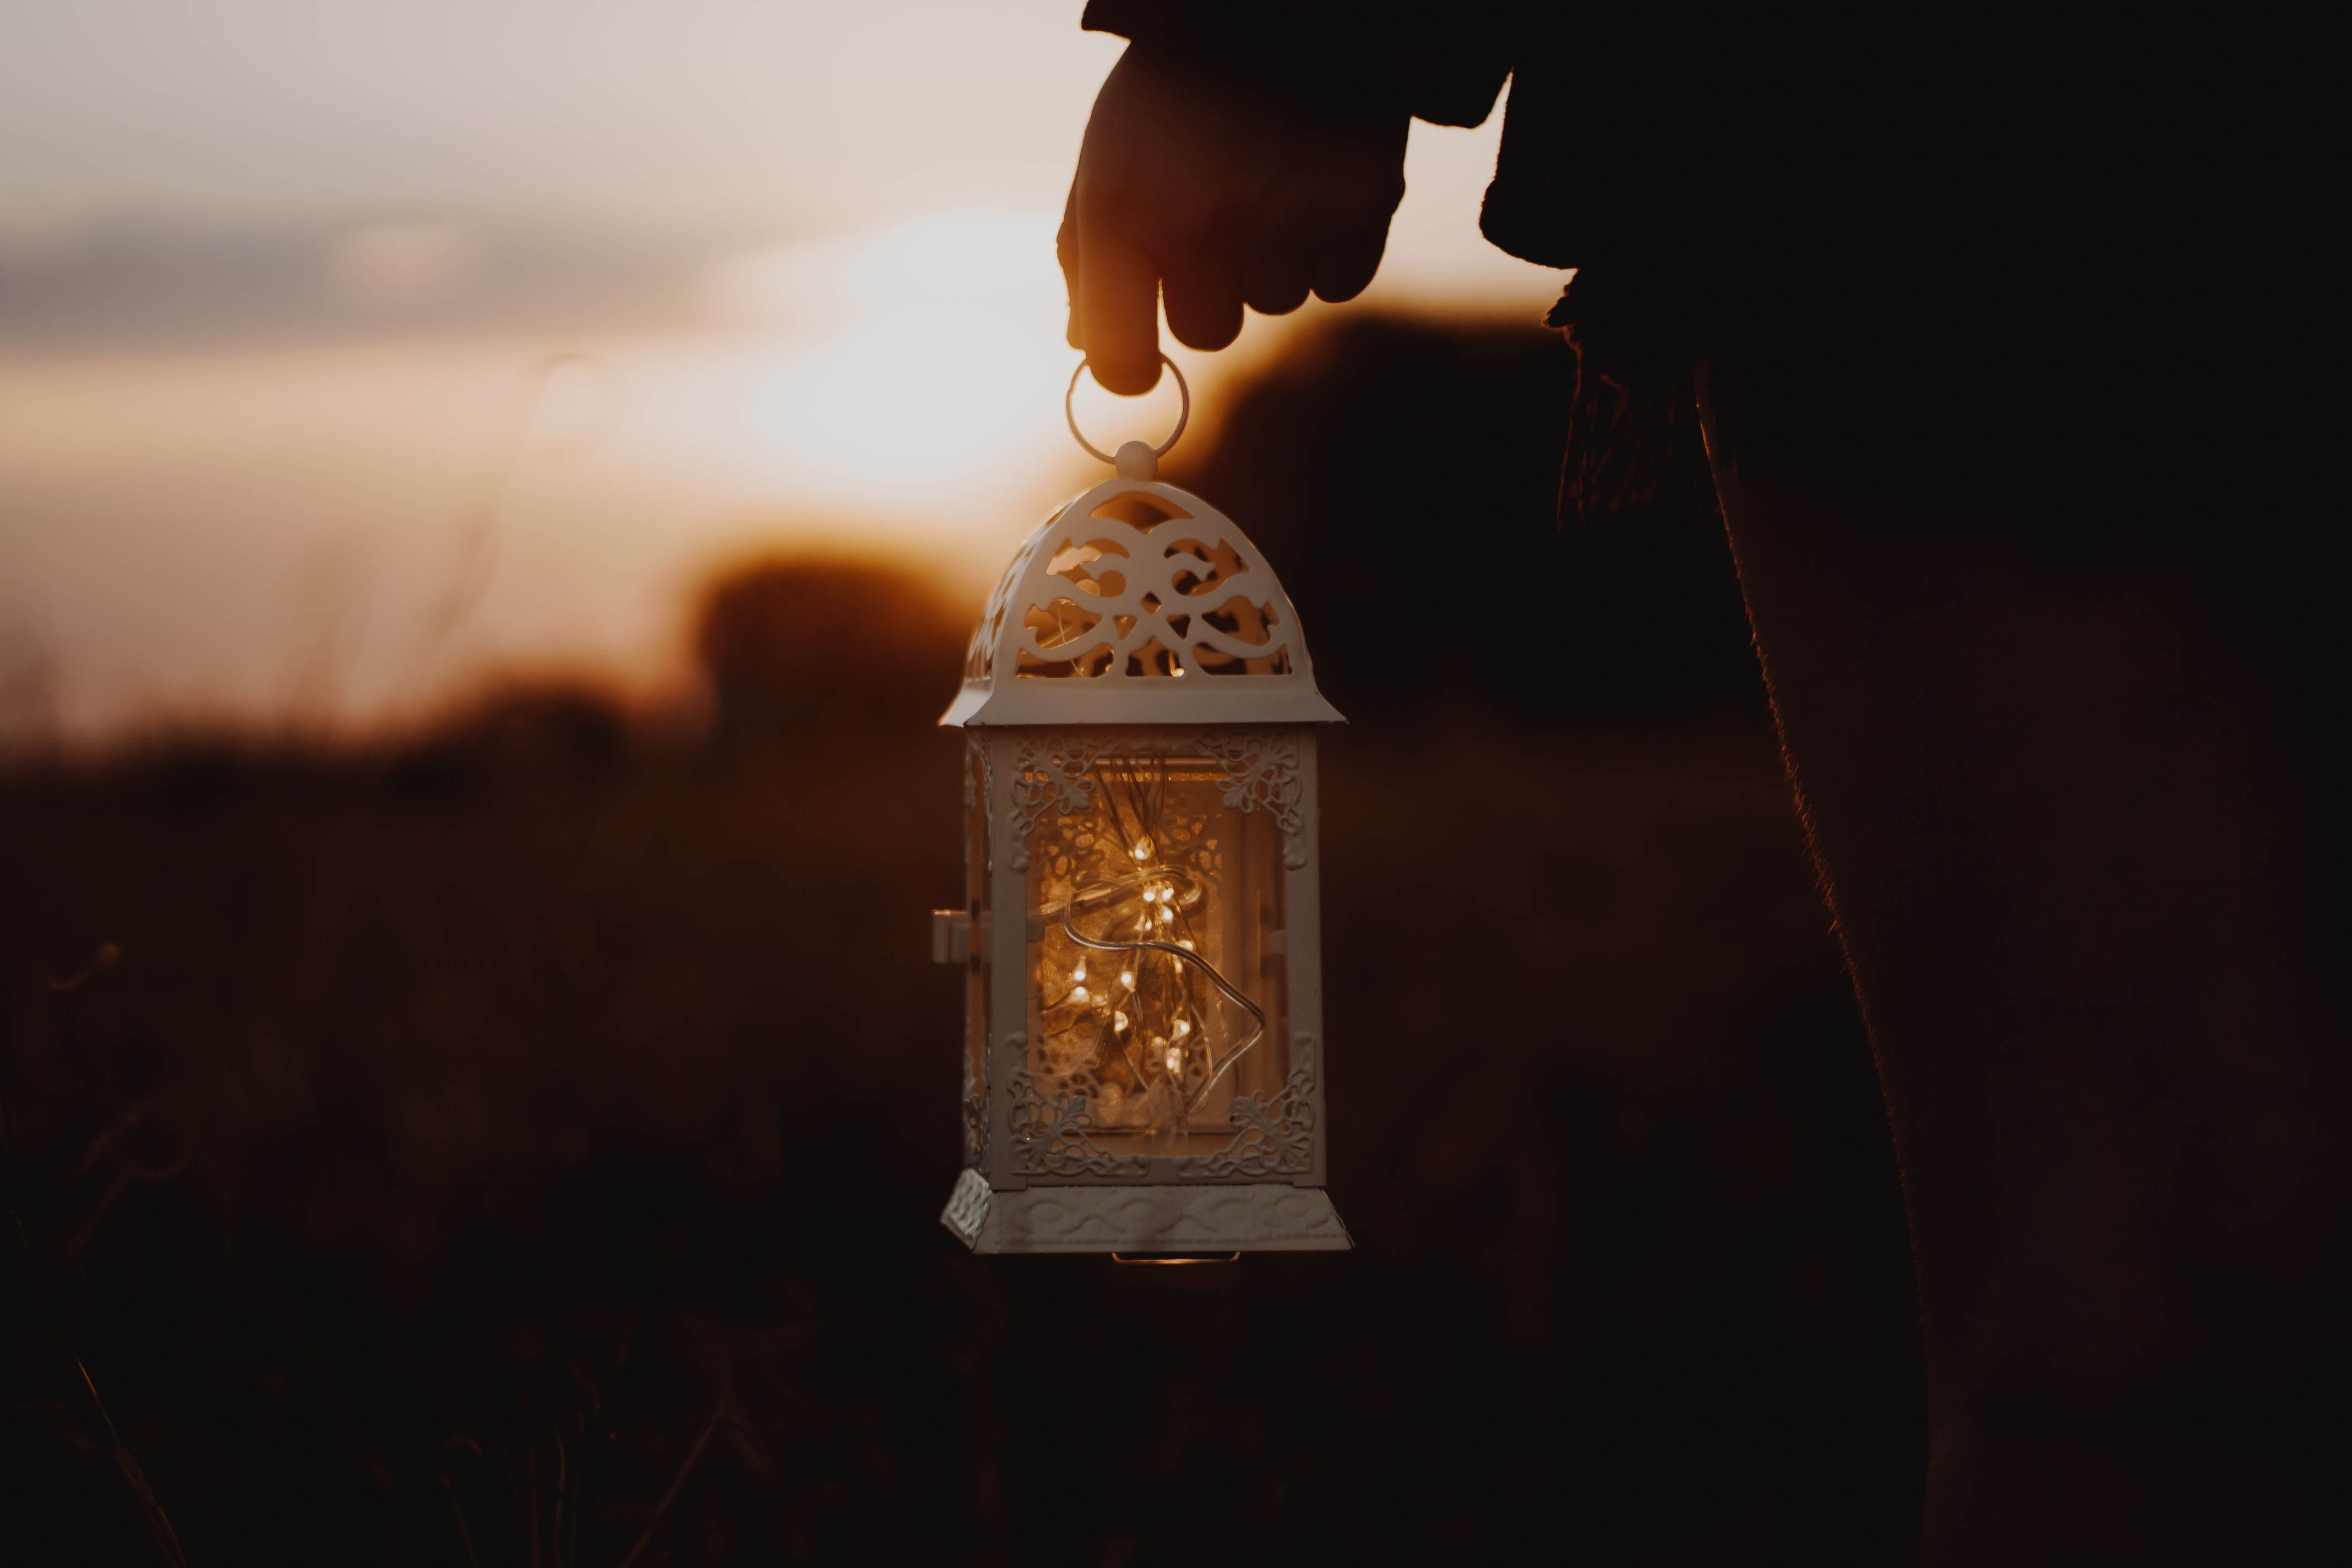 person holding white metal framed clear glass lantern during golden hour